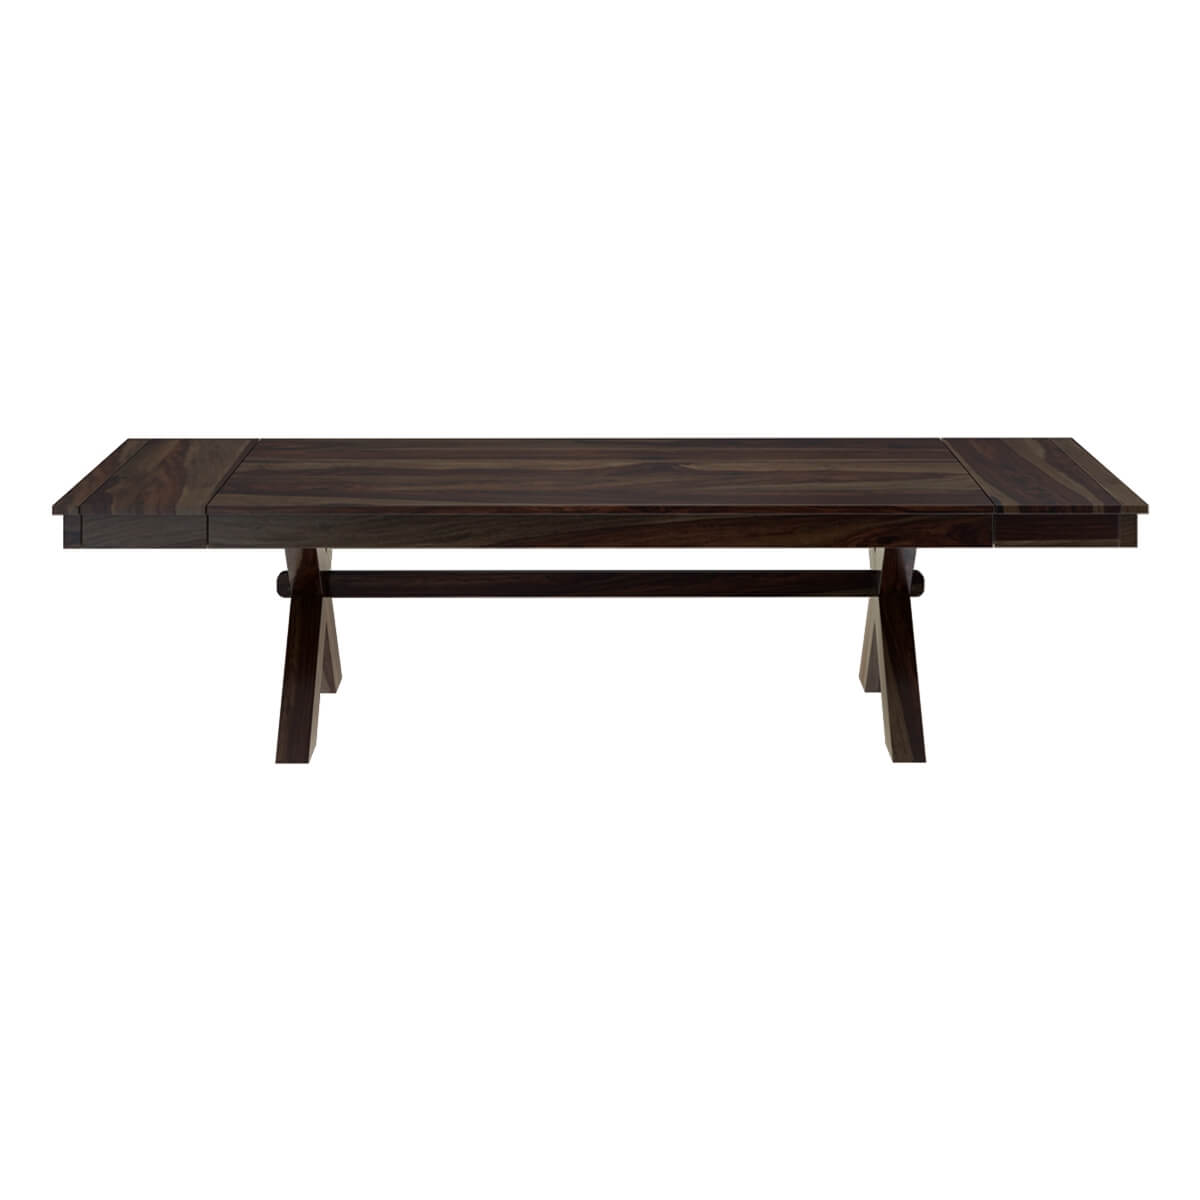 Westside picnic style solid wood dining table with extensions for Styling a dining table